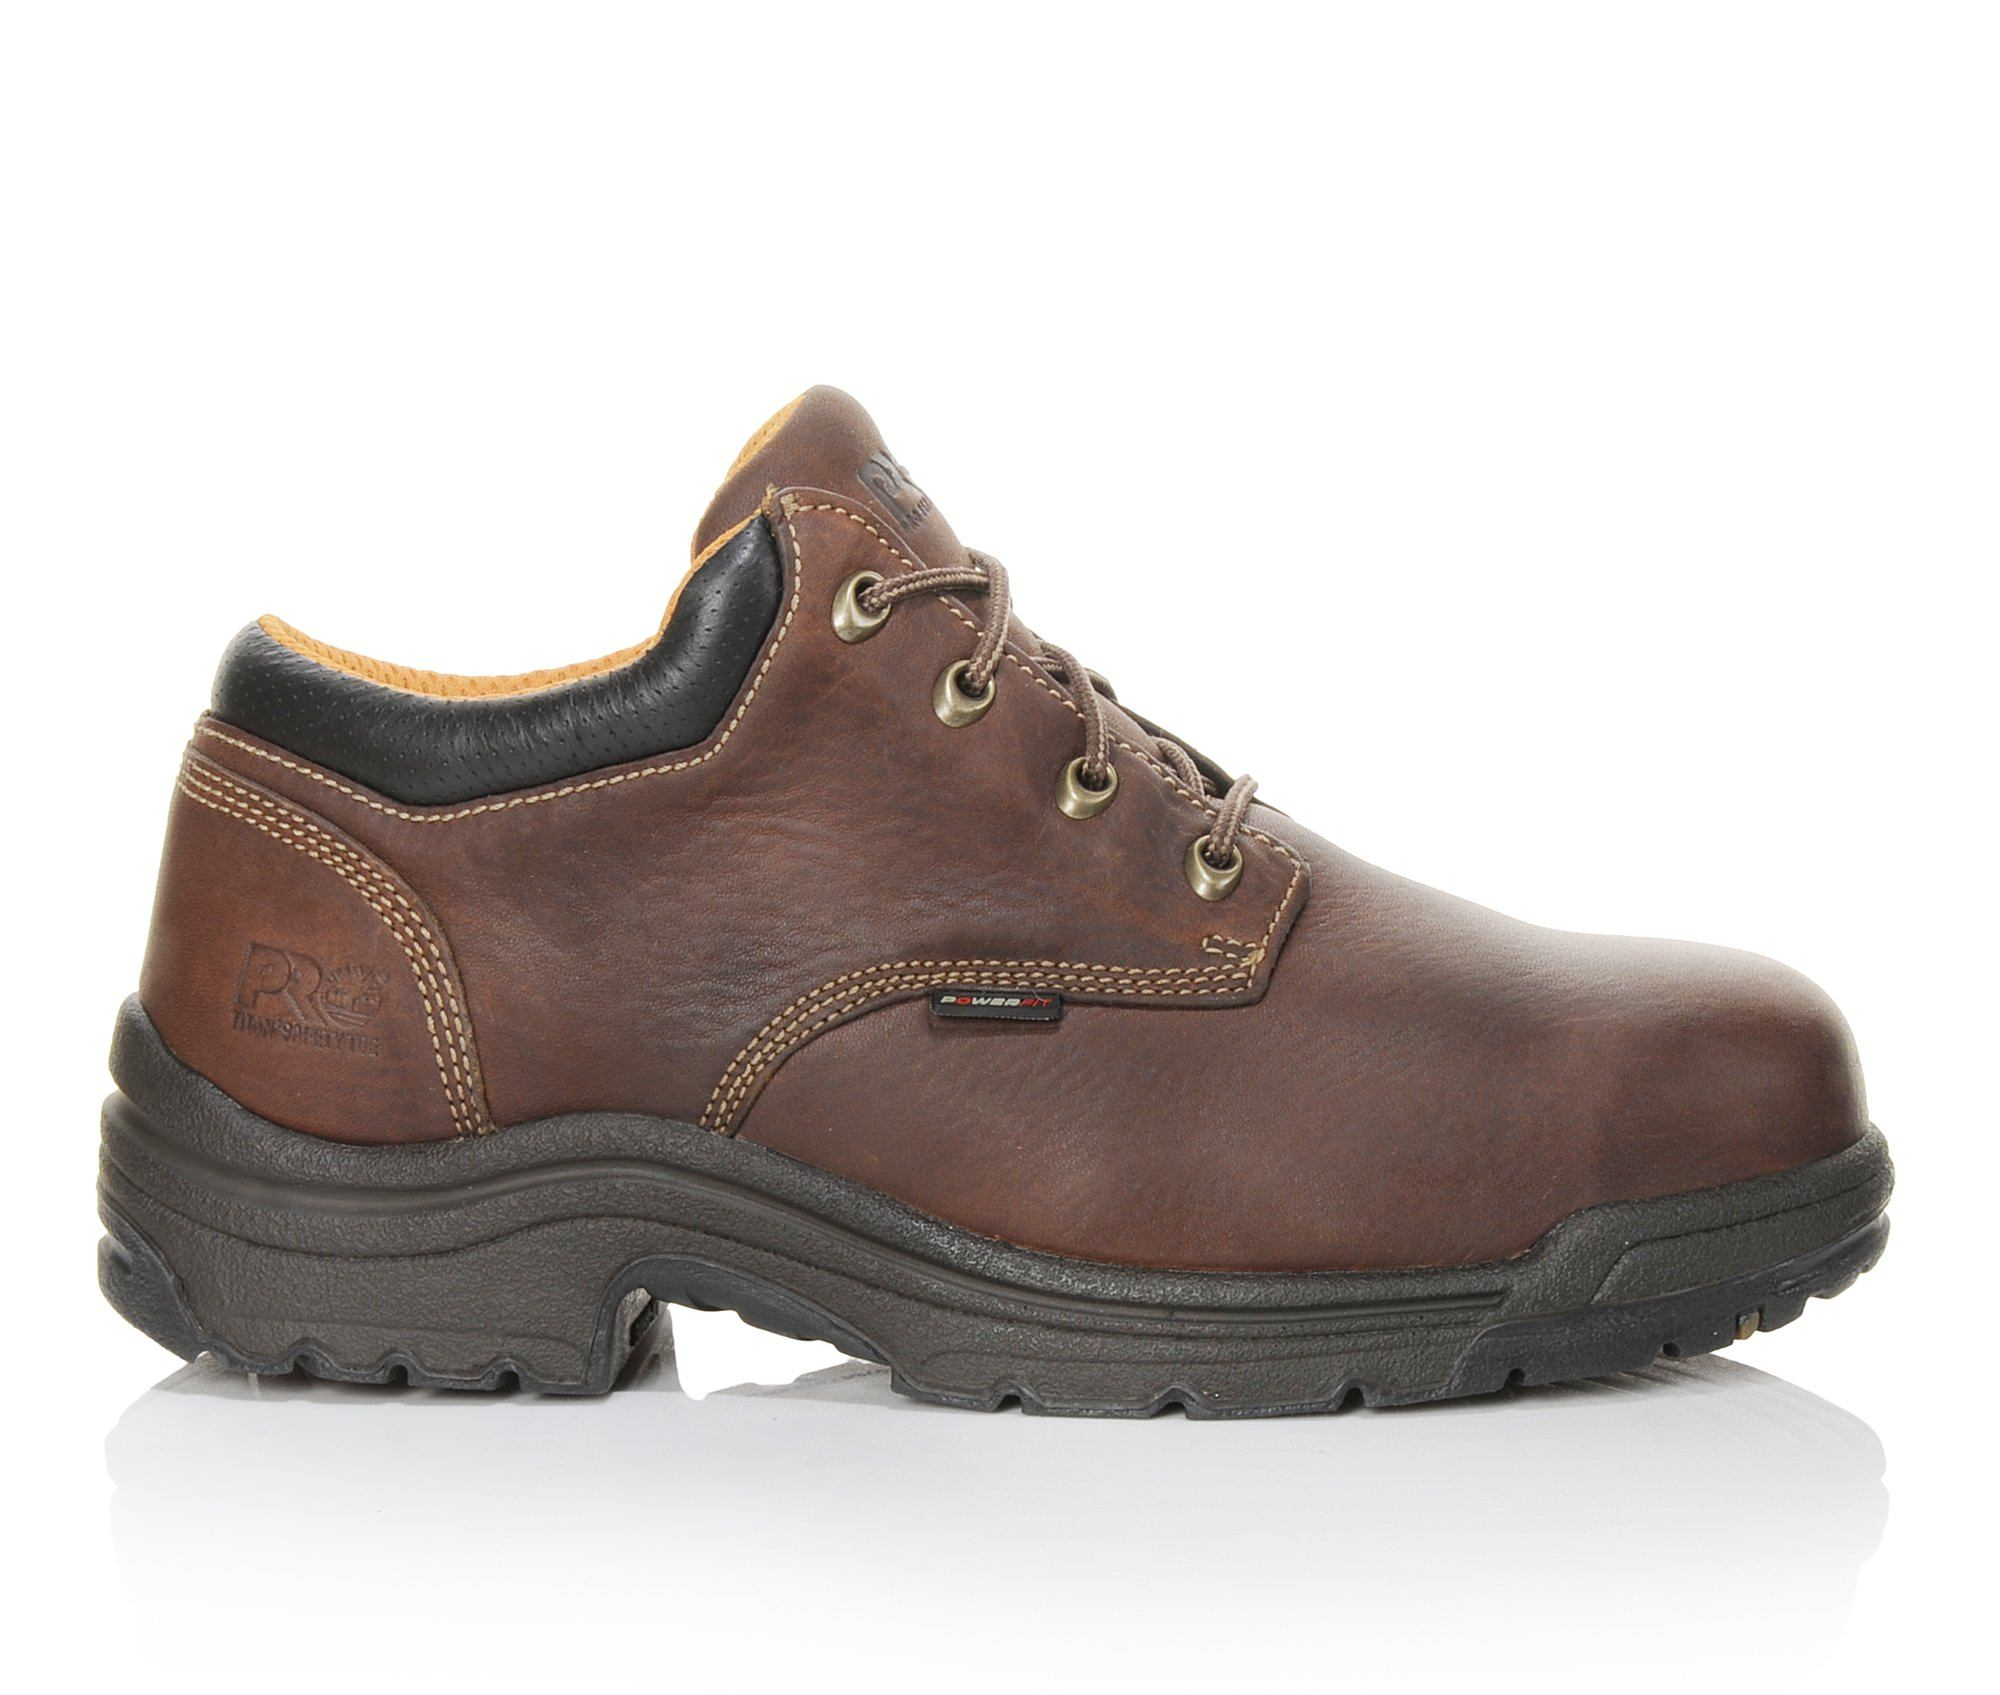 Timberland Pro Titan Oxford 47028 Alloy Toe Men's Boots (Brown Leather)